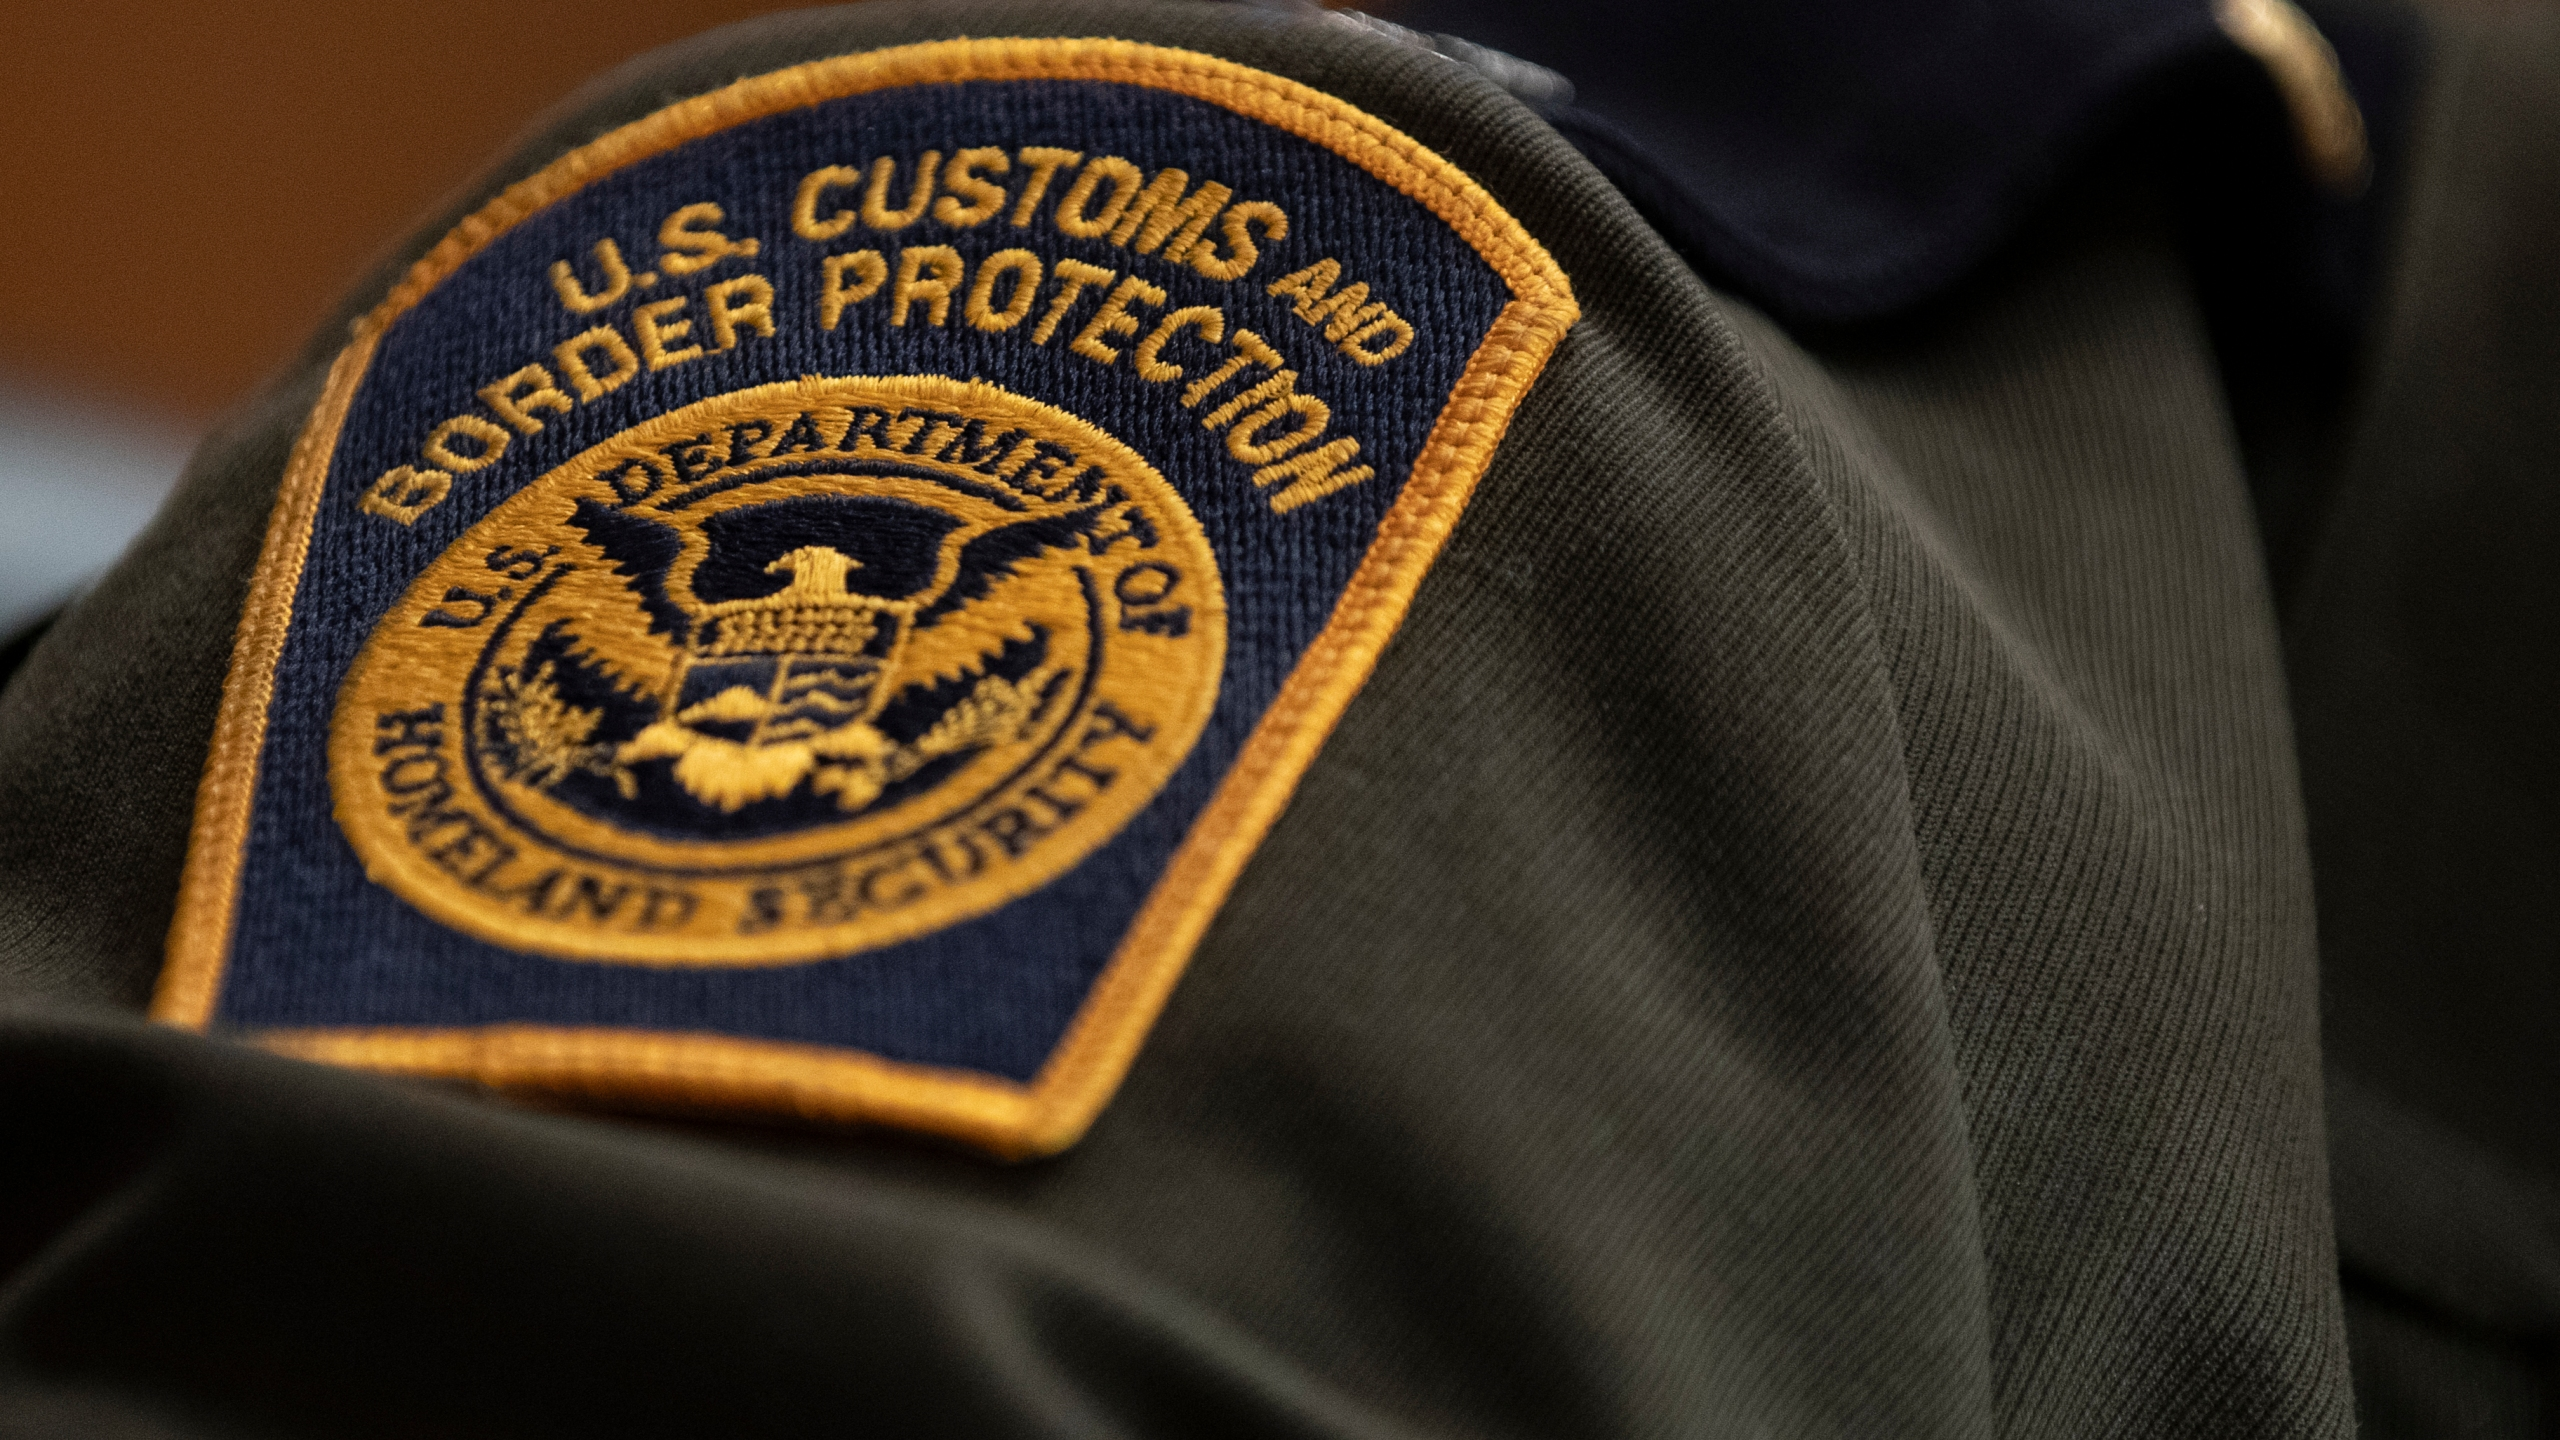 A U.S. Customs and Border Protection patch on a uniform on April 9, 2019 in Washington, DC.. (Credit: Alex Edelman/Getty Images)